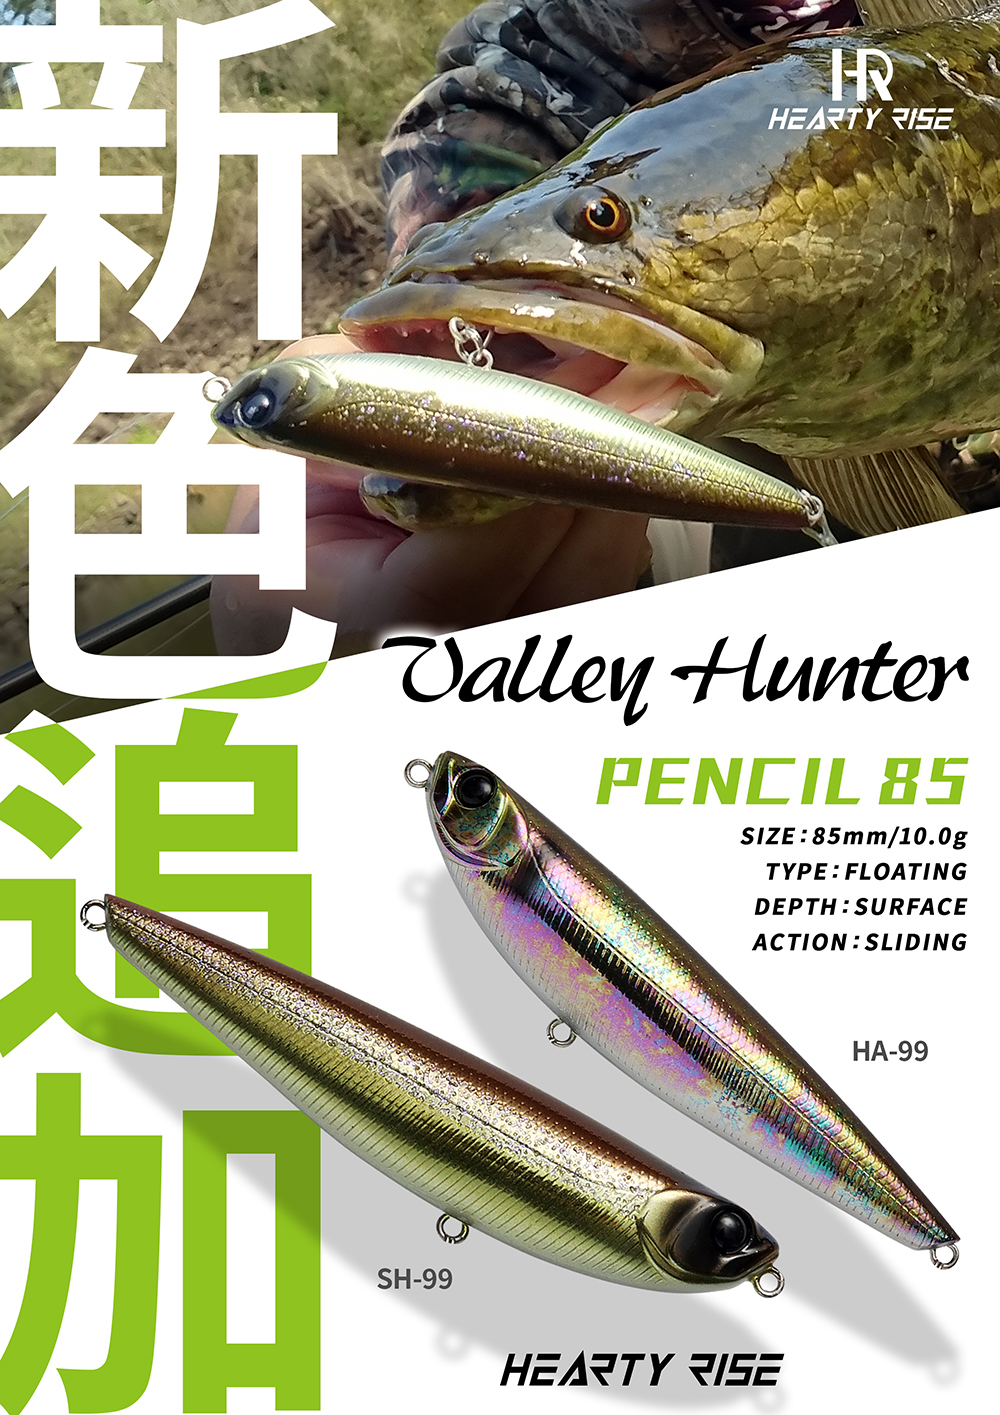 HR VALLEY HUNTER 溪谷獵人 Pencil 85 1000-01